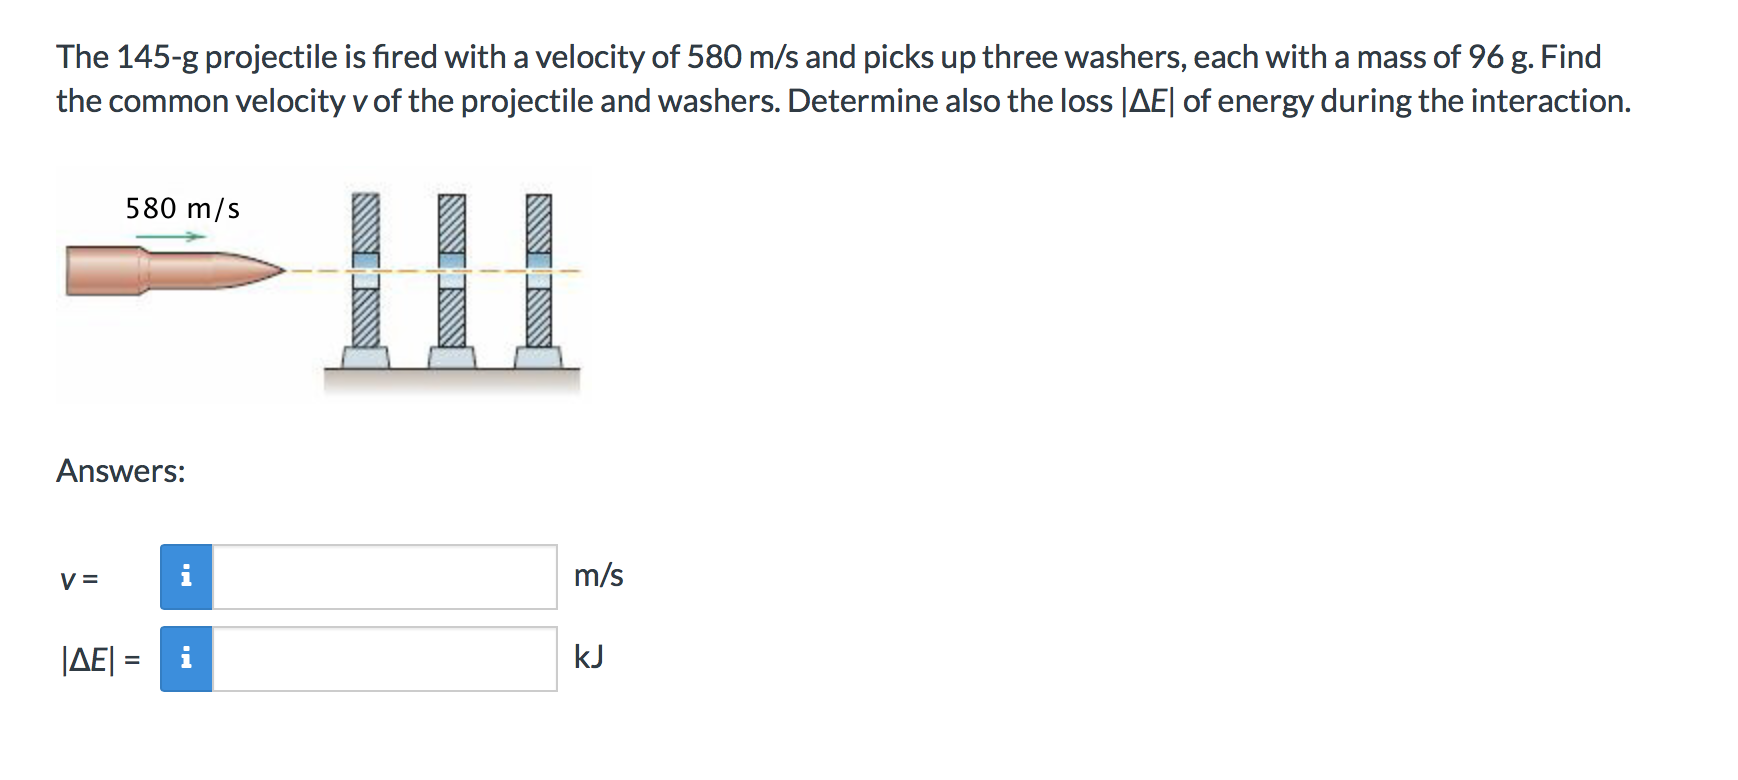 The 145-g projectile is fired with a velocity of 580 m/s and picks up three washers, each with a mass of 96 g. Find the common velocity v of the projectile and washers. Determine also the loss |AEl of energy during the interaction. 580 m/s Answers: m/s |AE kJ